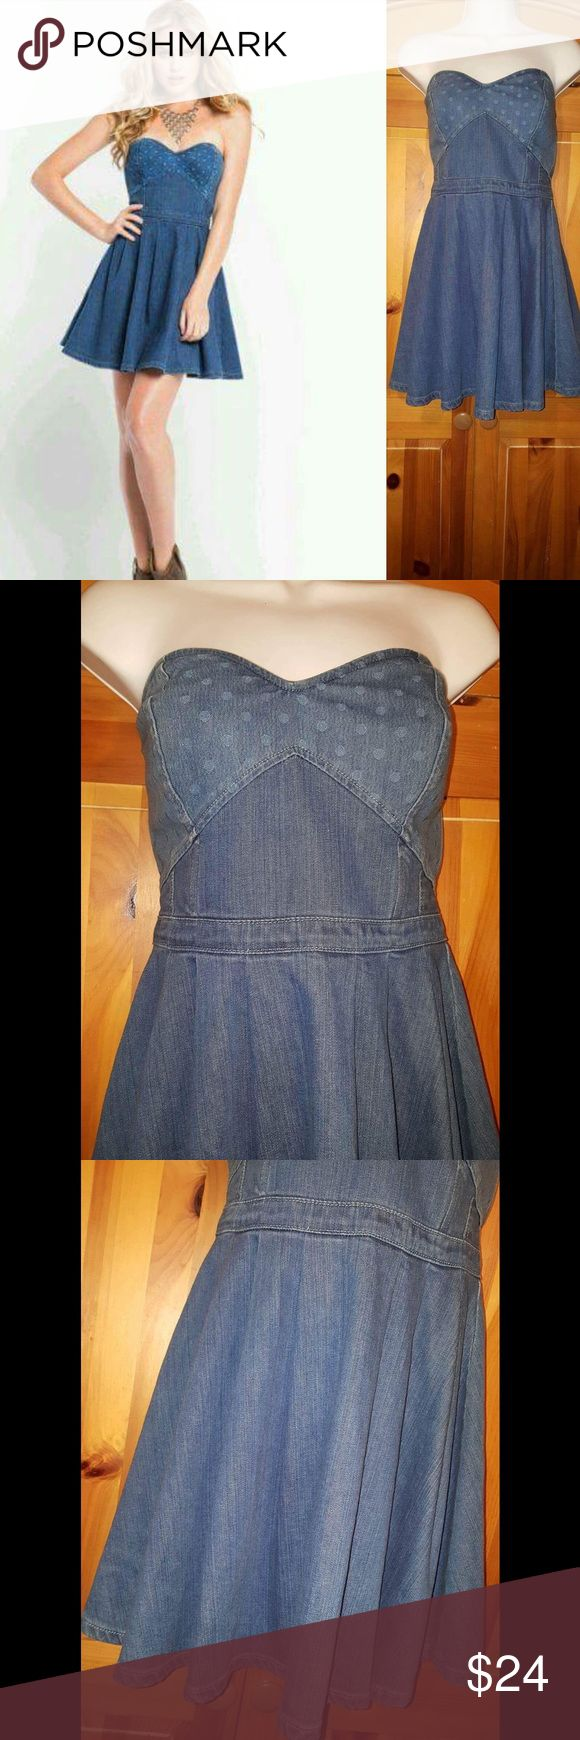 Guess Amelia Denim Mini Dress Super sweet Guess Amelia Denim Mini Dress.  Bustier top, Sweetheart neckline, & Exposed zipper Condition: Pre-Loved, EUC Retail: $108.00 Size:4  Length:25 in Bust: 28 in Questions down below CONSIDERING REASONABLE OFFERS Get it in time for that special event Same day-next day shipping Guess Dresses Mini